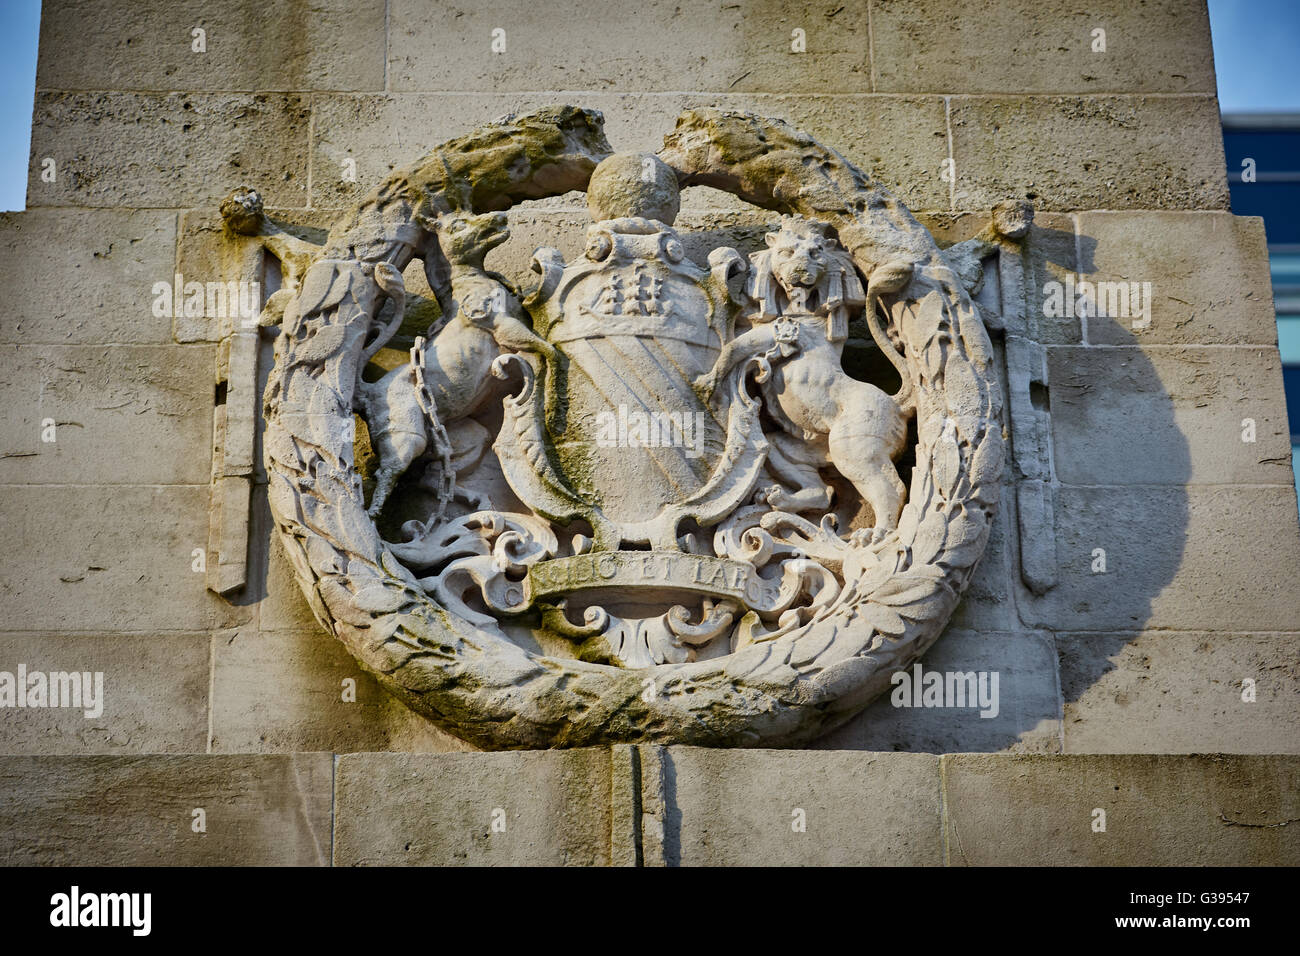 Manchester coat of arms stone Cenotaph  memorial monument nautical outdoors places remembrance remembering never - Stock Image